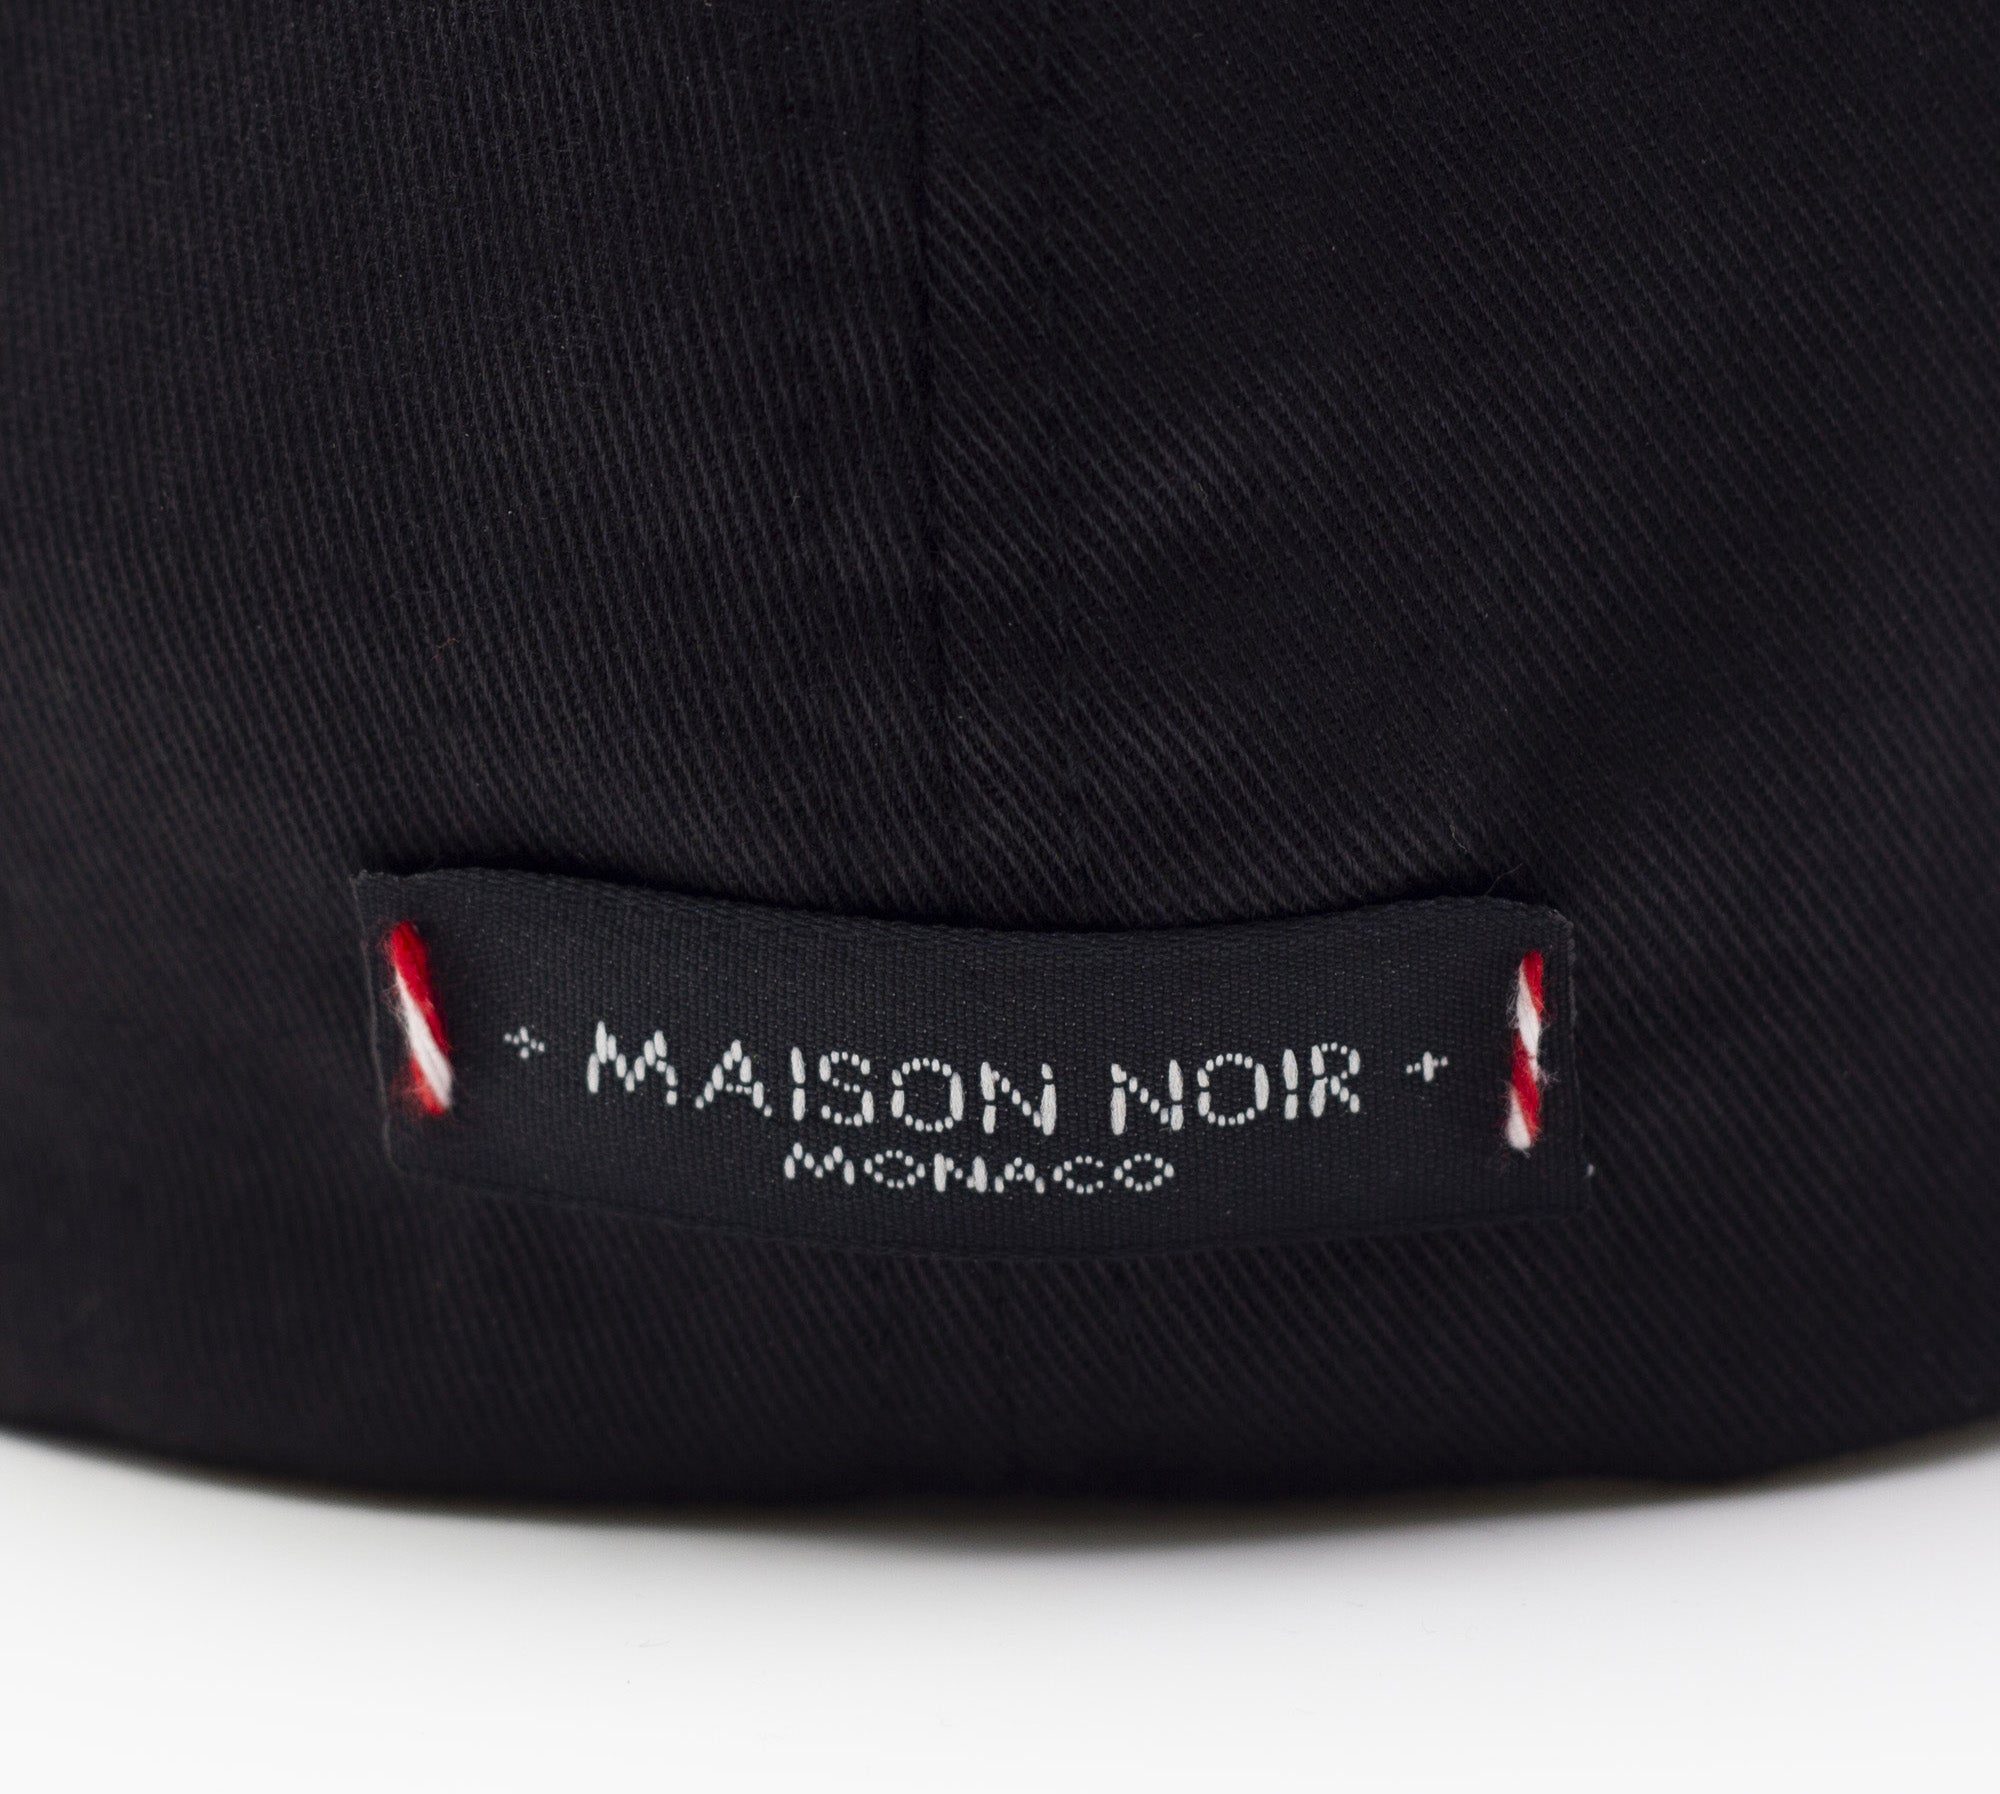 'Maison Noir' White on Black Baseball Cap